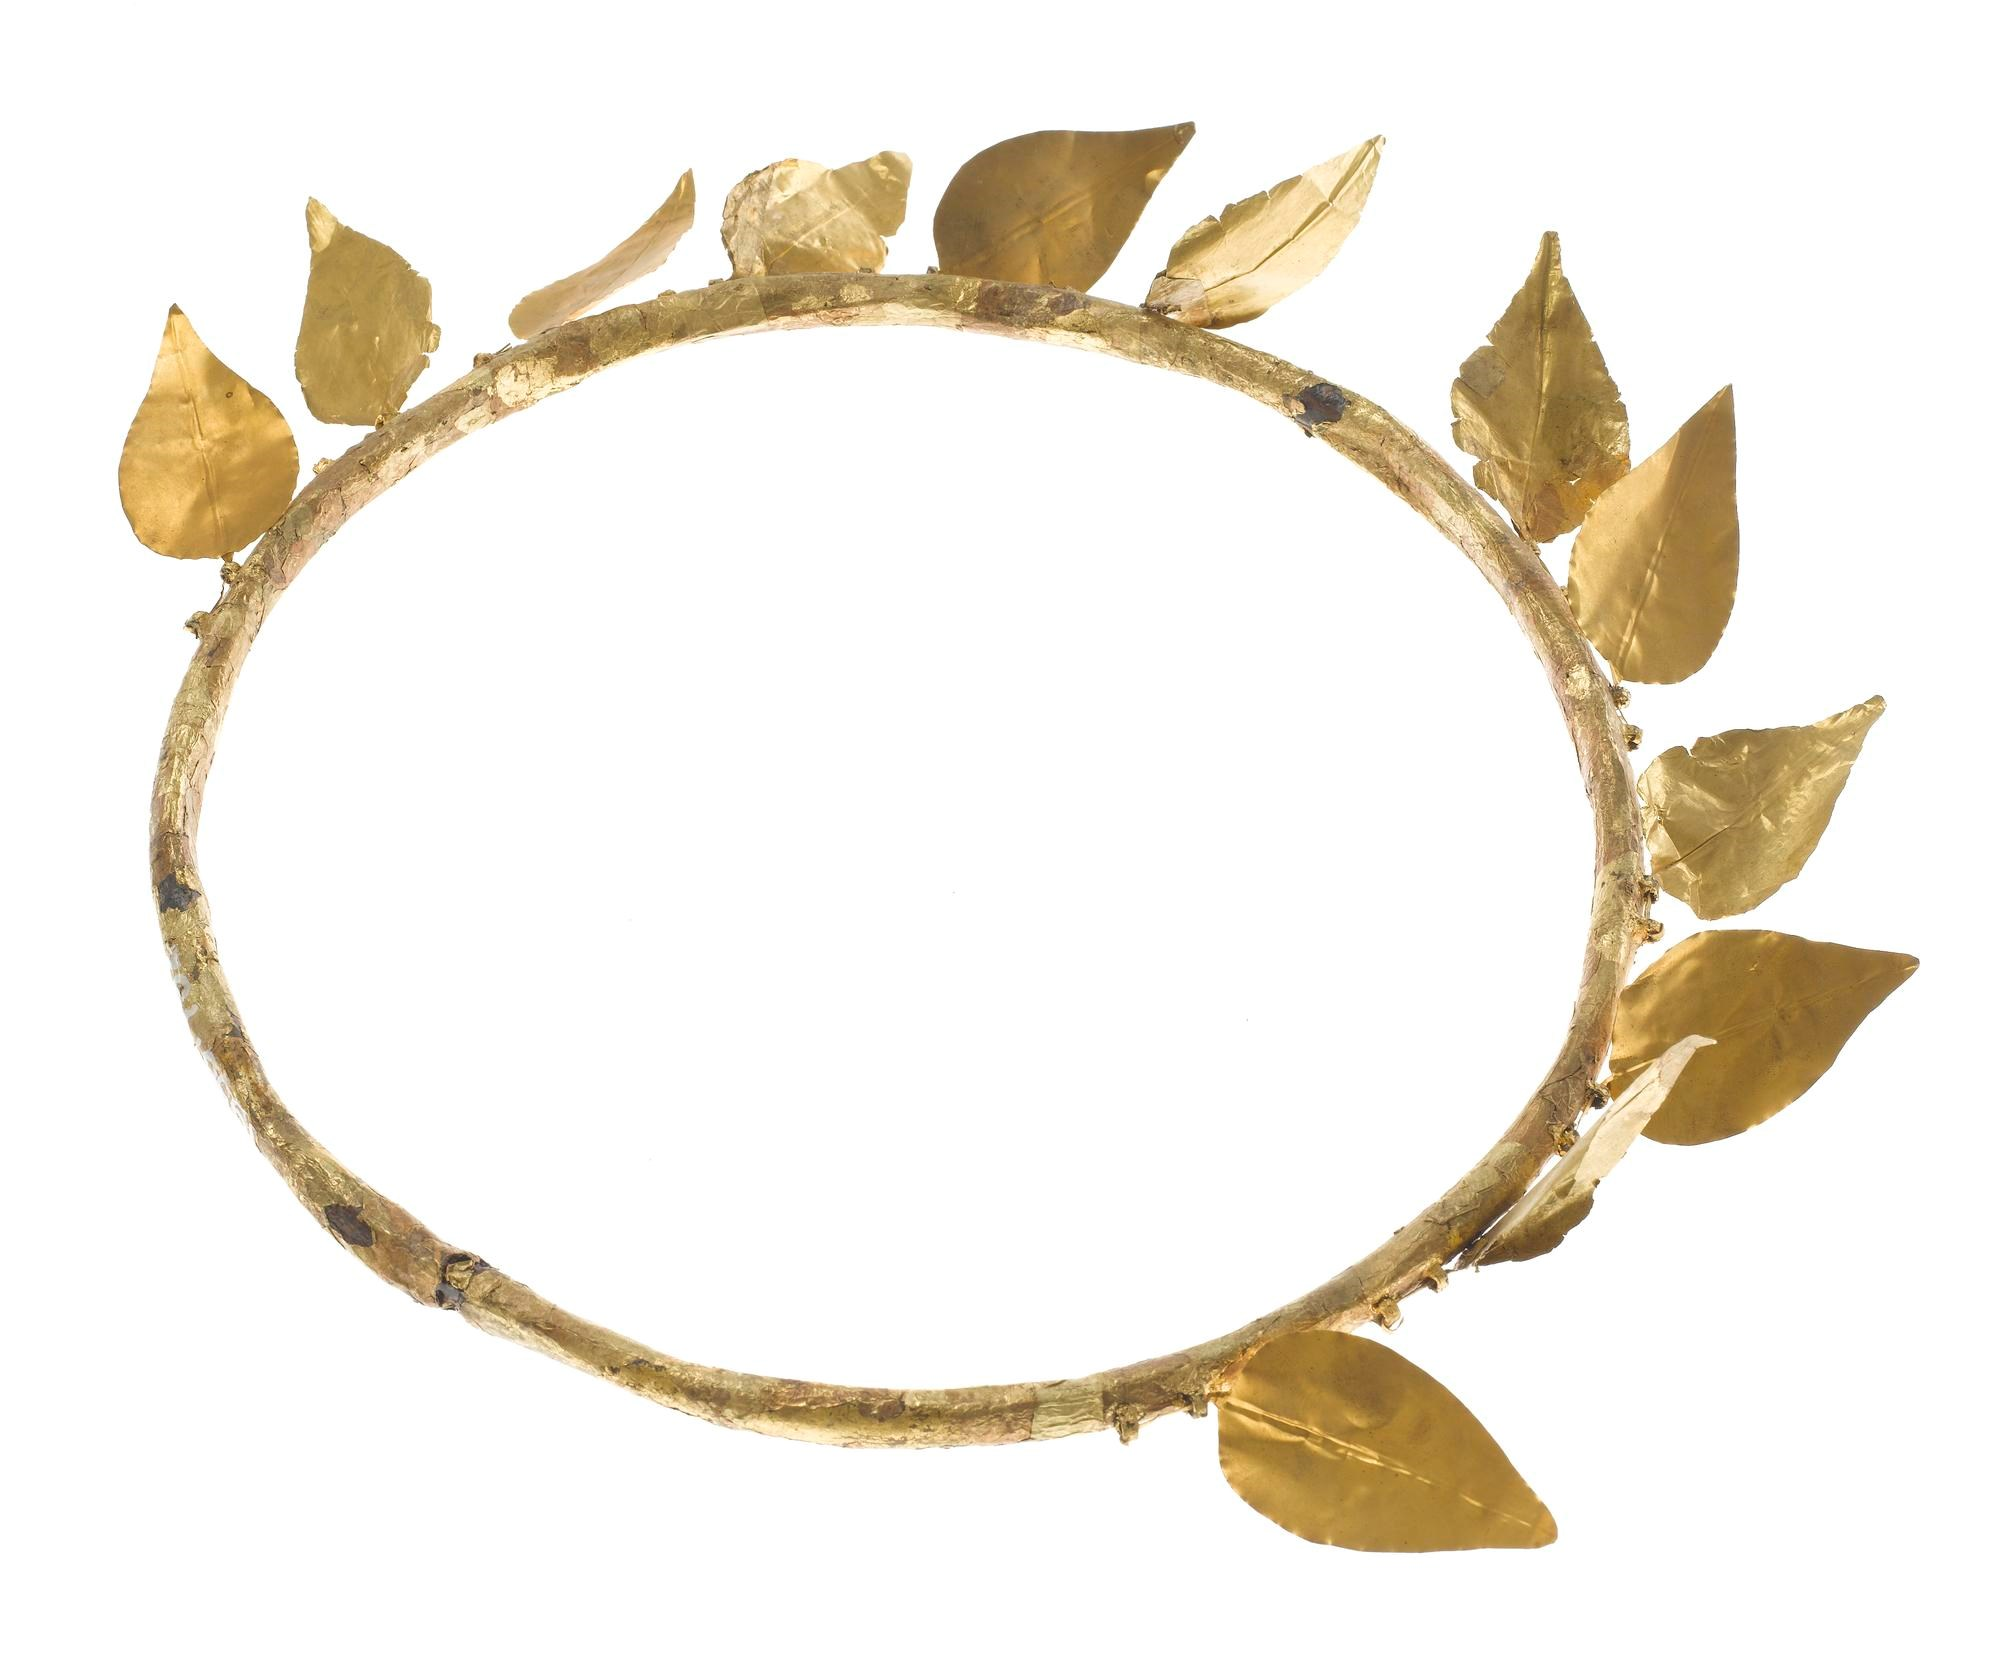 Wreath of twelve gold-foil leaves attached to a ring of copper, found on the mummy of Montsuef: Ancient Egyptian, excavated by A.H. Rhind in the tomb of Montsuef at Sheikh Abd el-Qurna, Thebes, Early Roman Period, c9 BC.